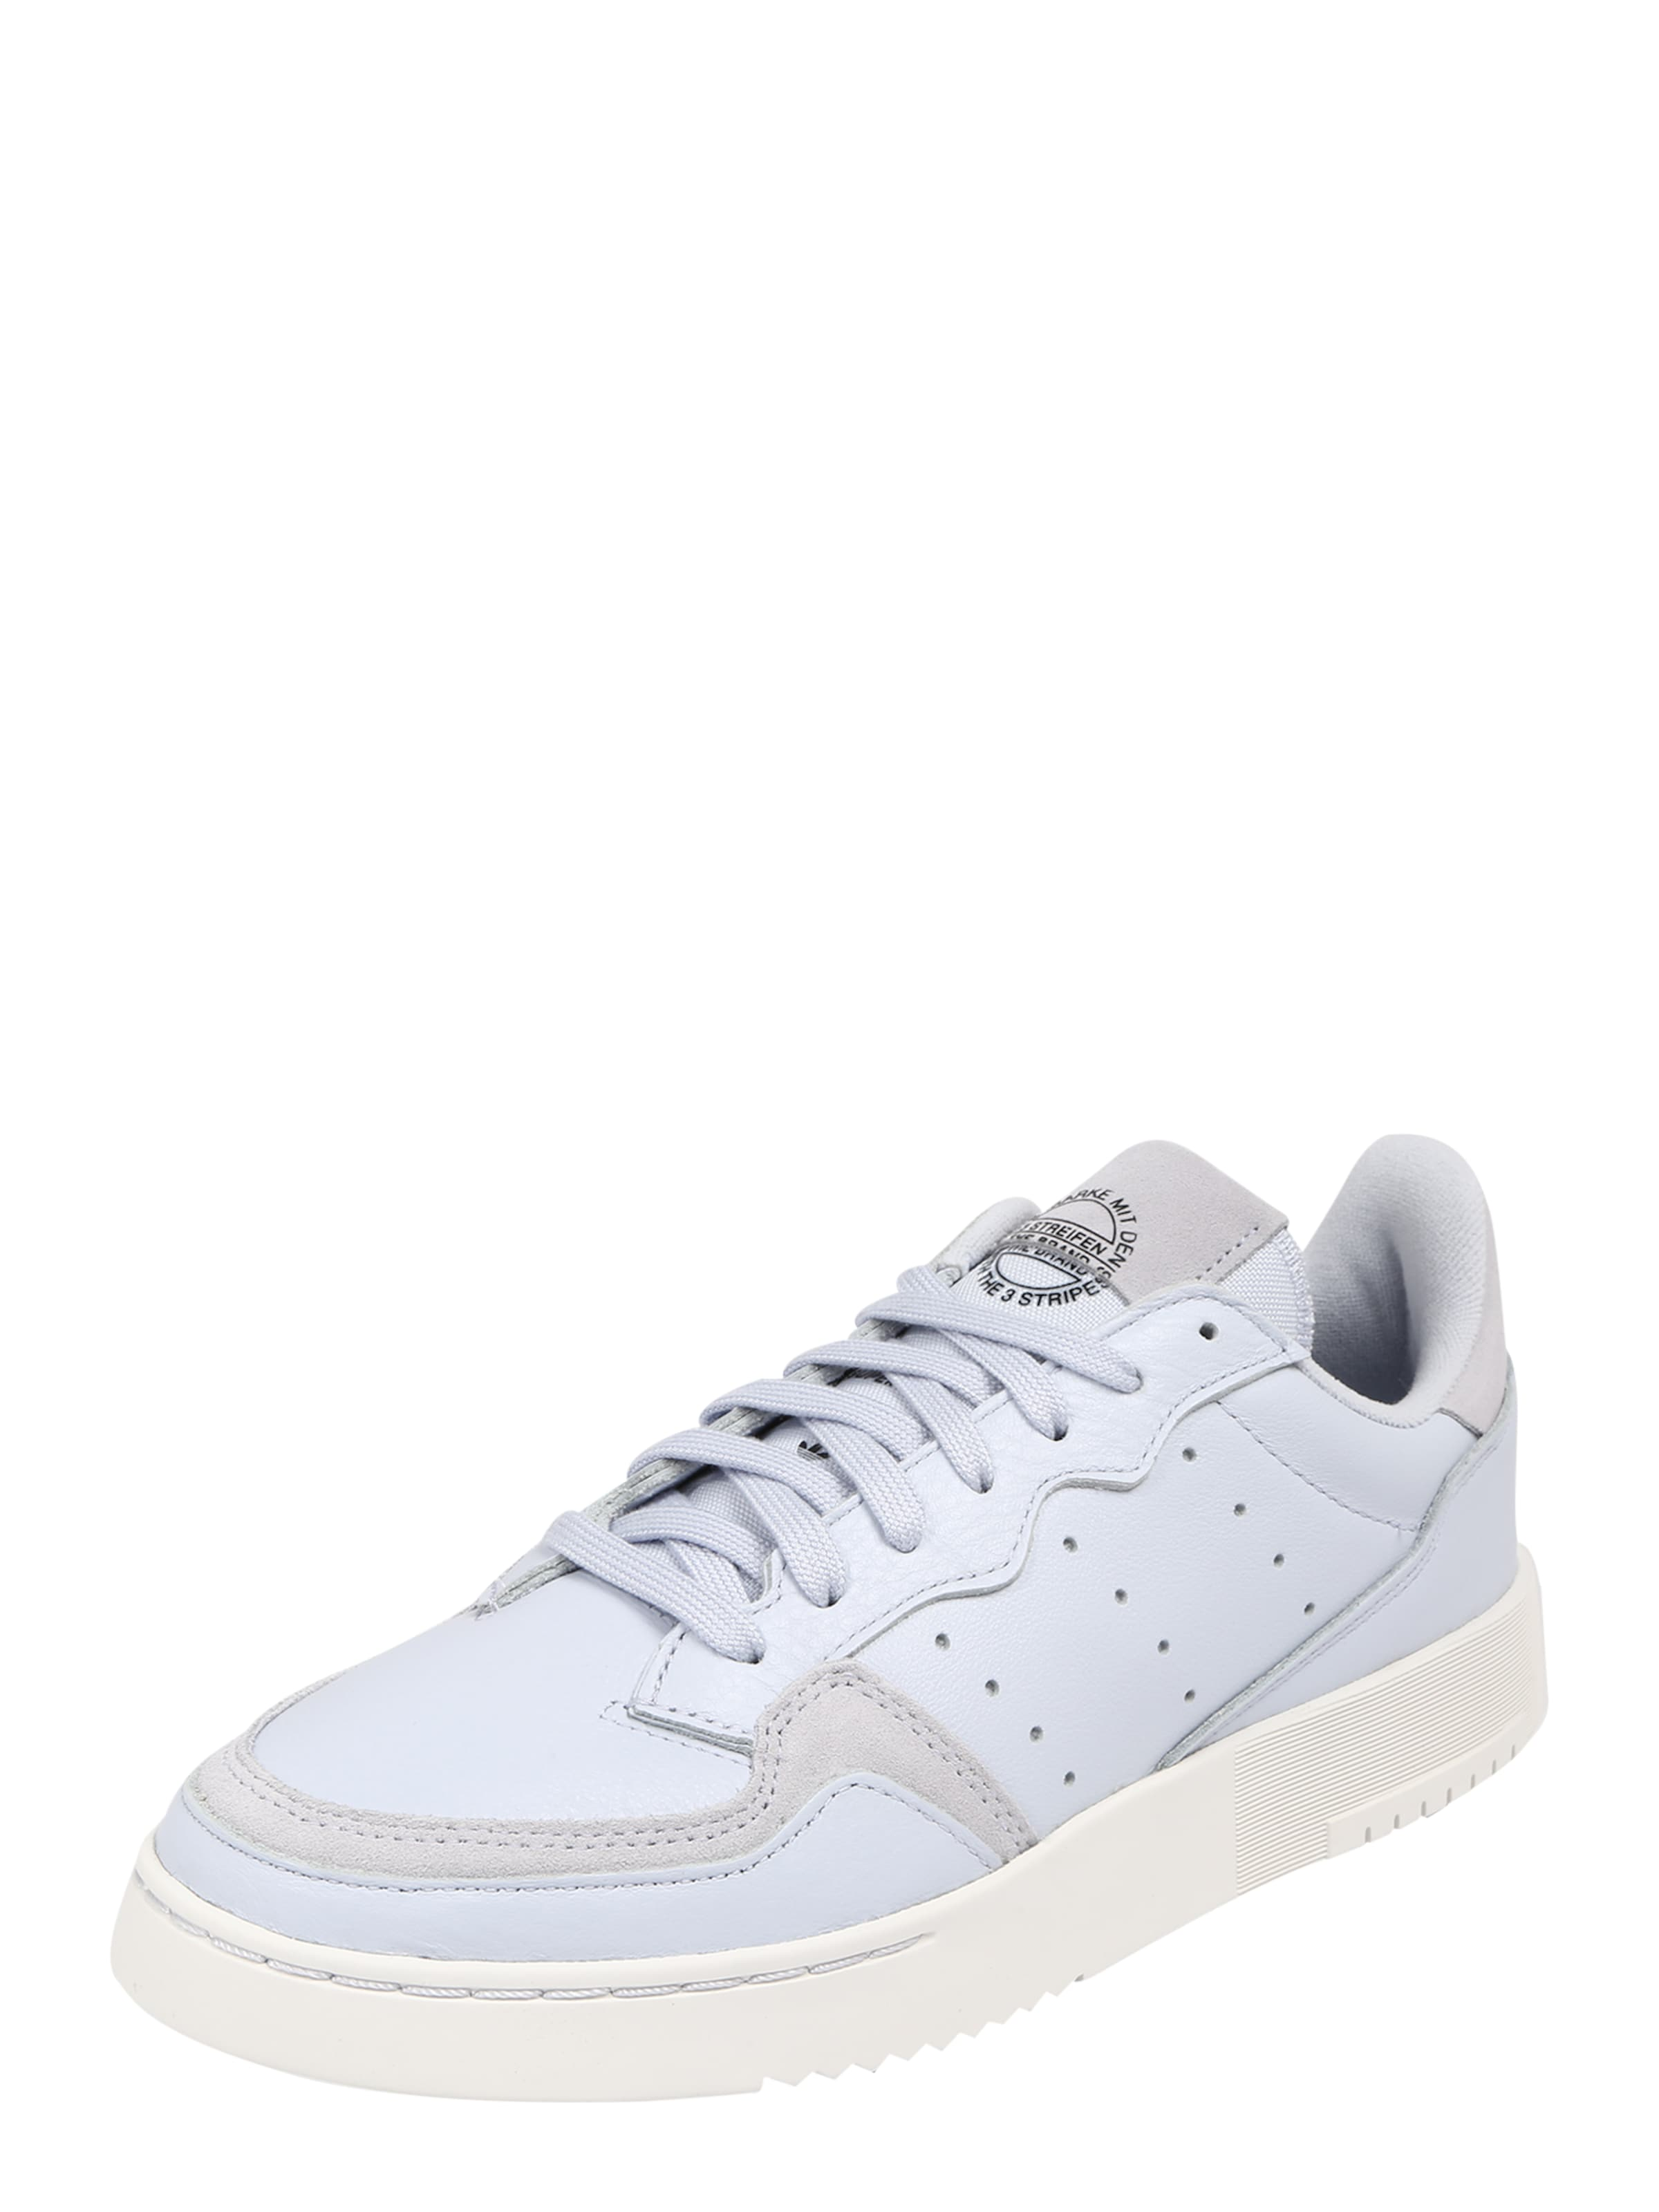 Hellblau In Originals Adidas Sneaker 'supercourt' UVSMzpqjLG